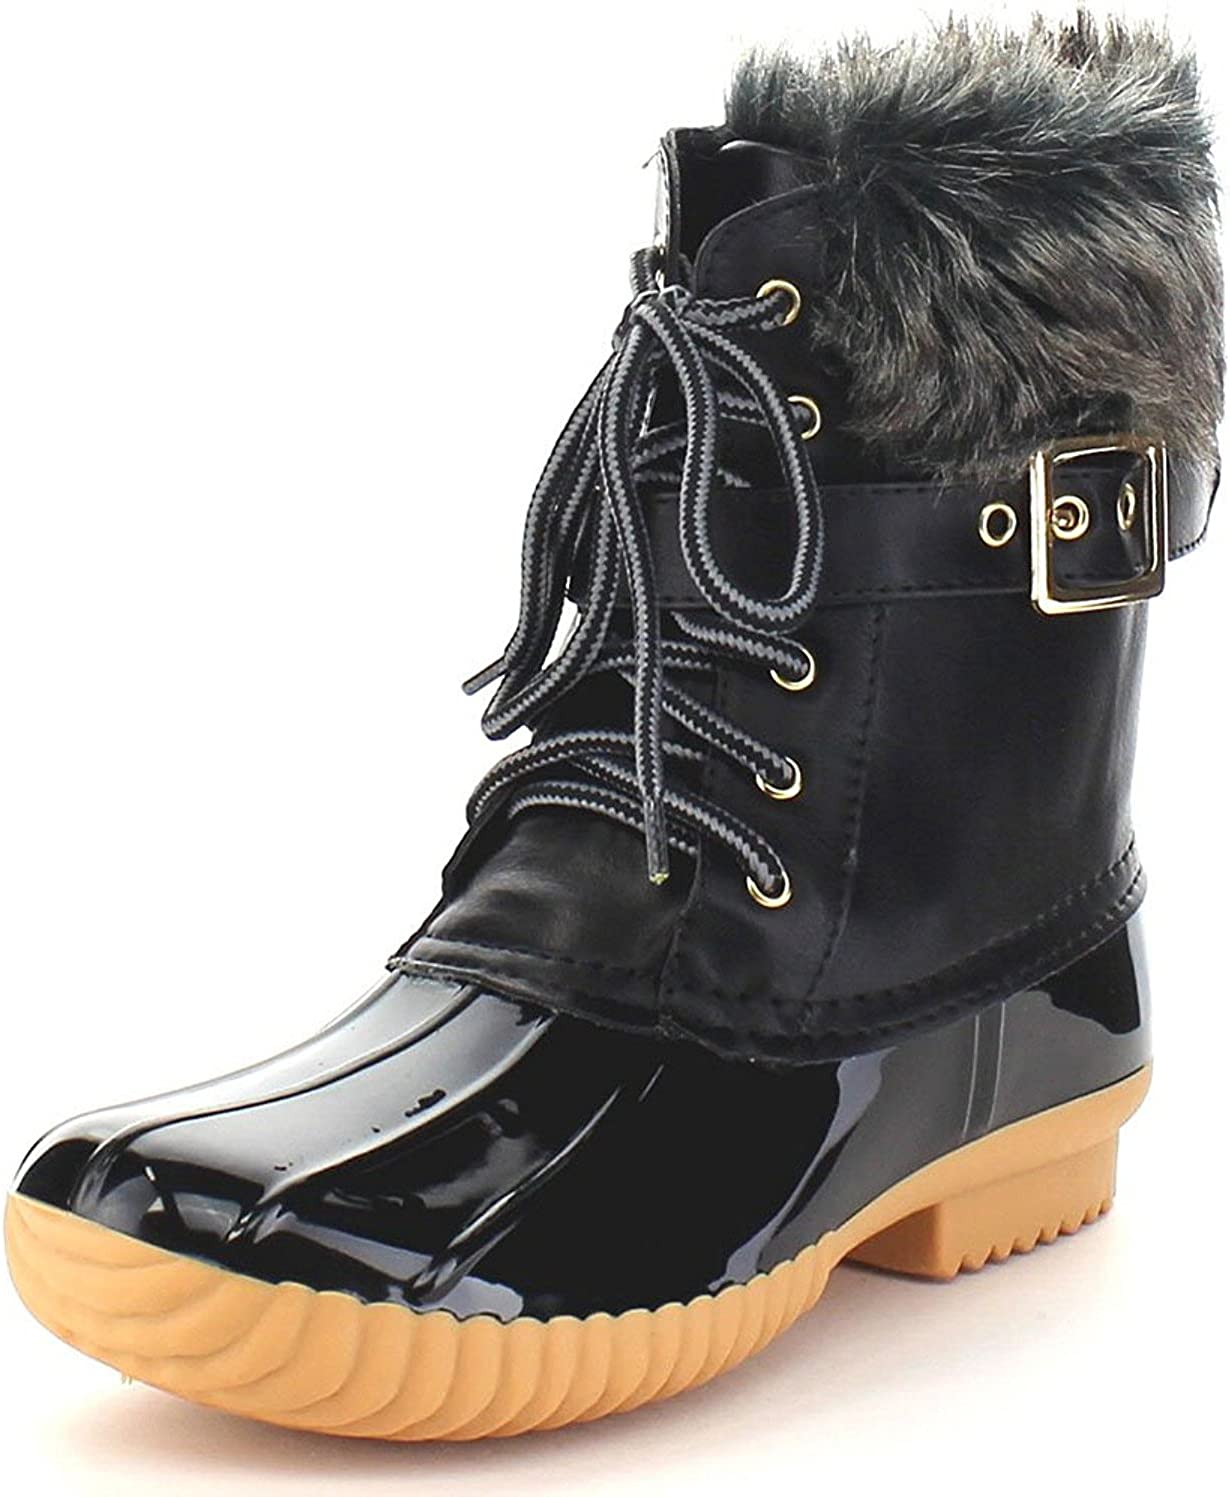 Nature Breeze Duck-01 Womens Chic Lace Up Buckled Duck Waterproof Snow Boots